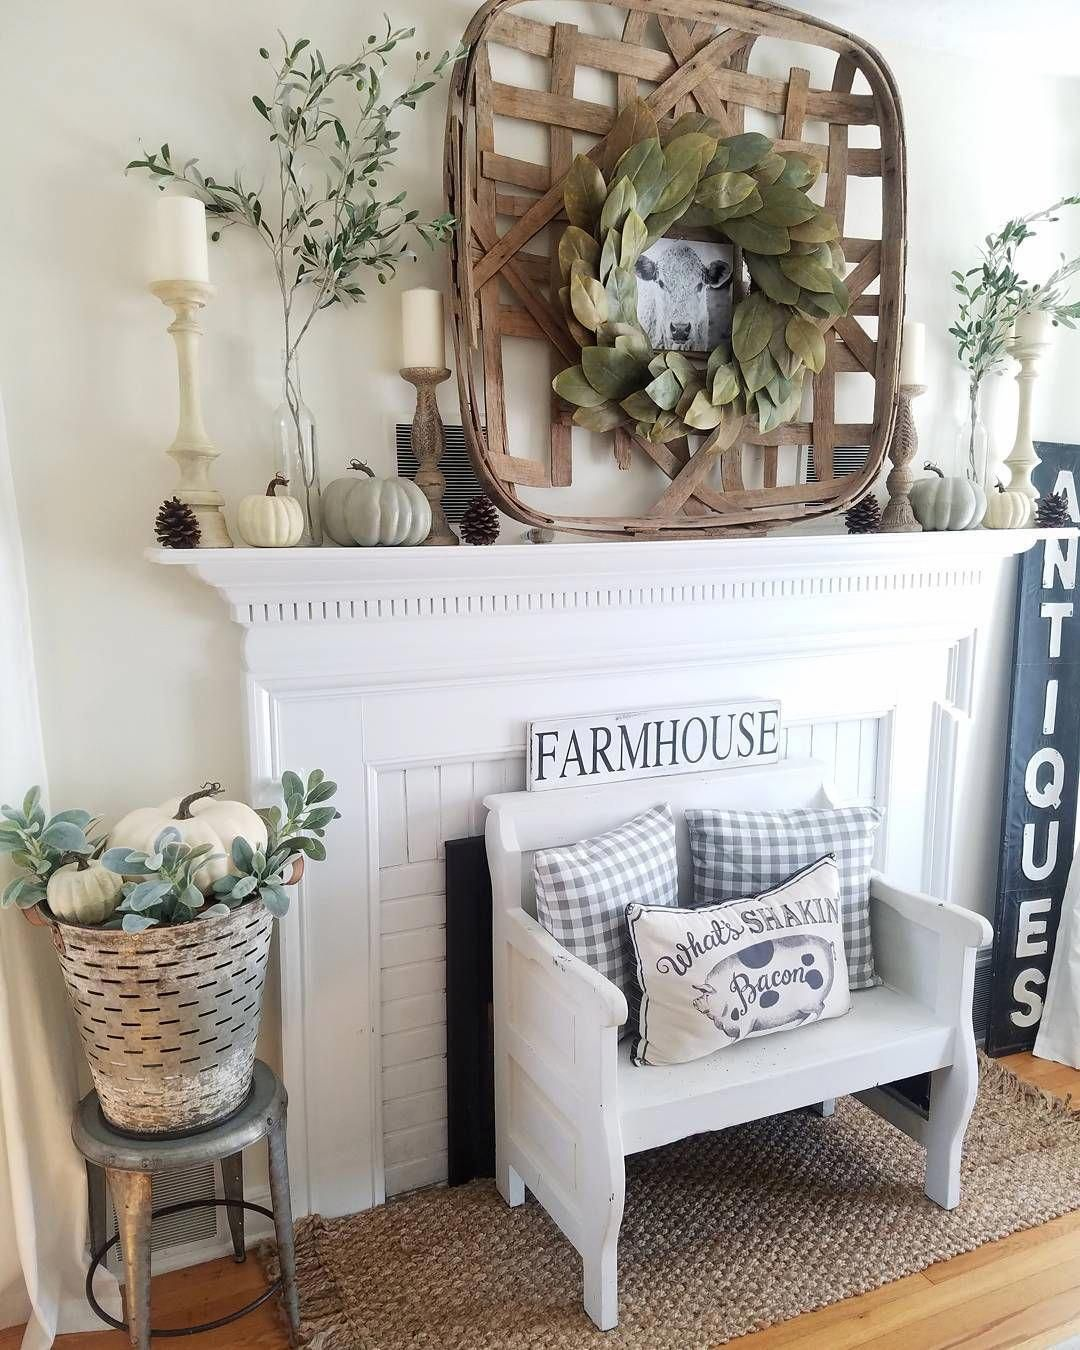 Idealistic Utilized Country Style Home Decor Southern Living A Knockout Post Country House Decor Wall Decor Living Room Farm House Living Room Southern living room decor